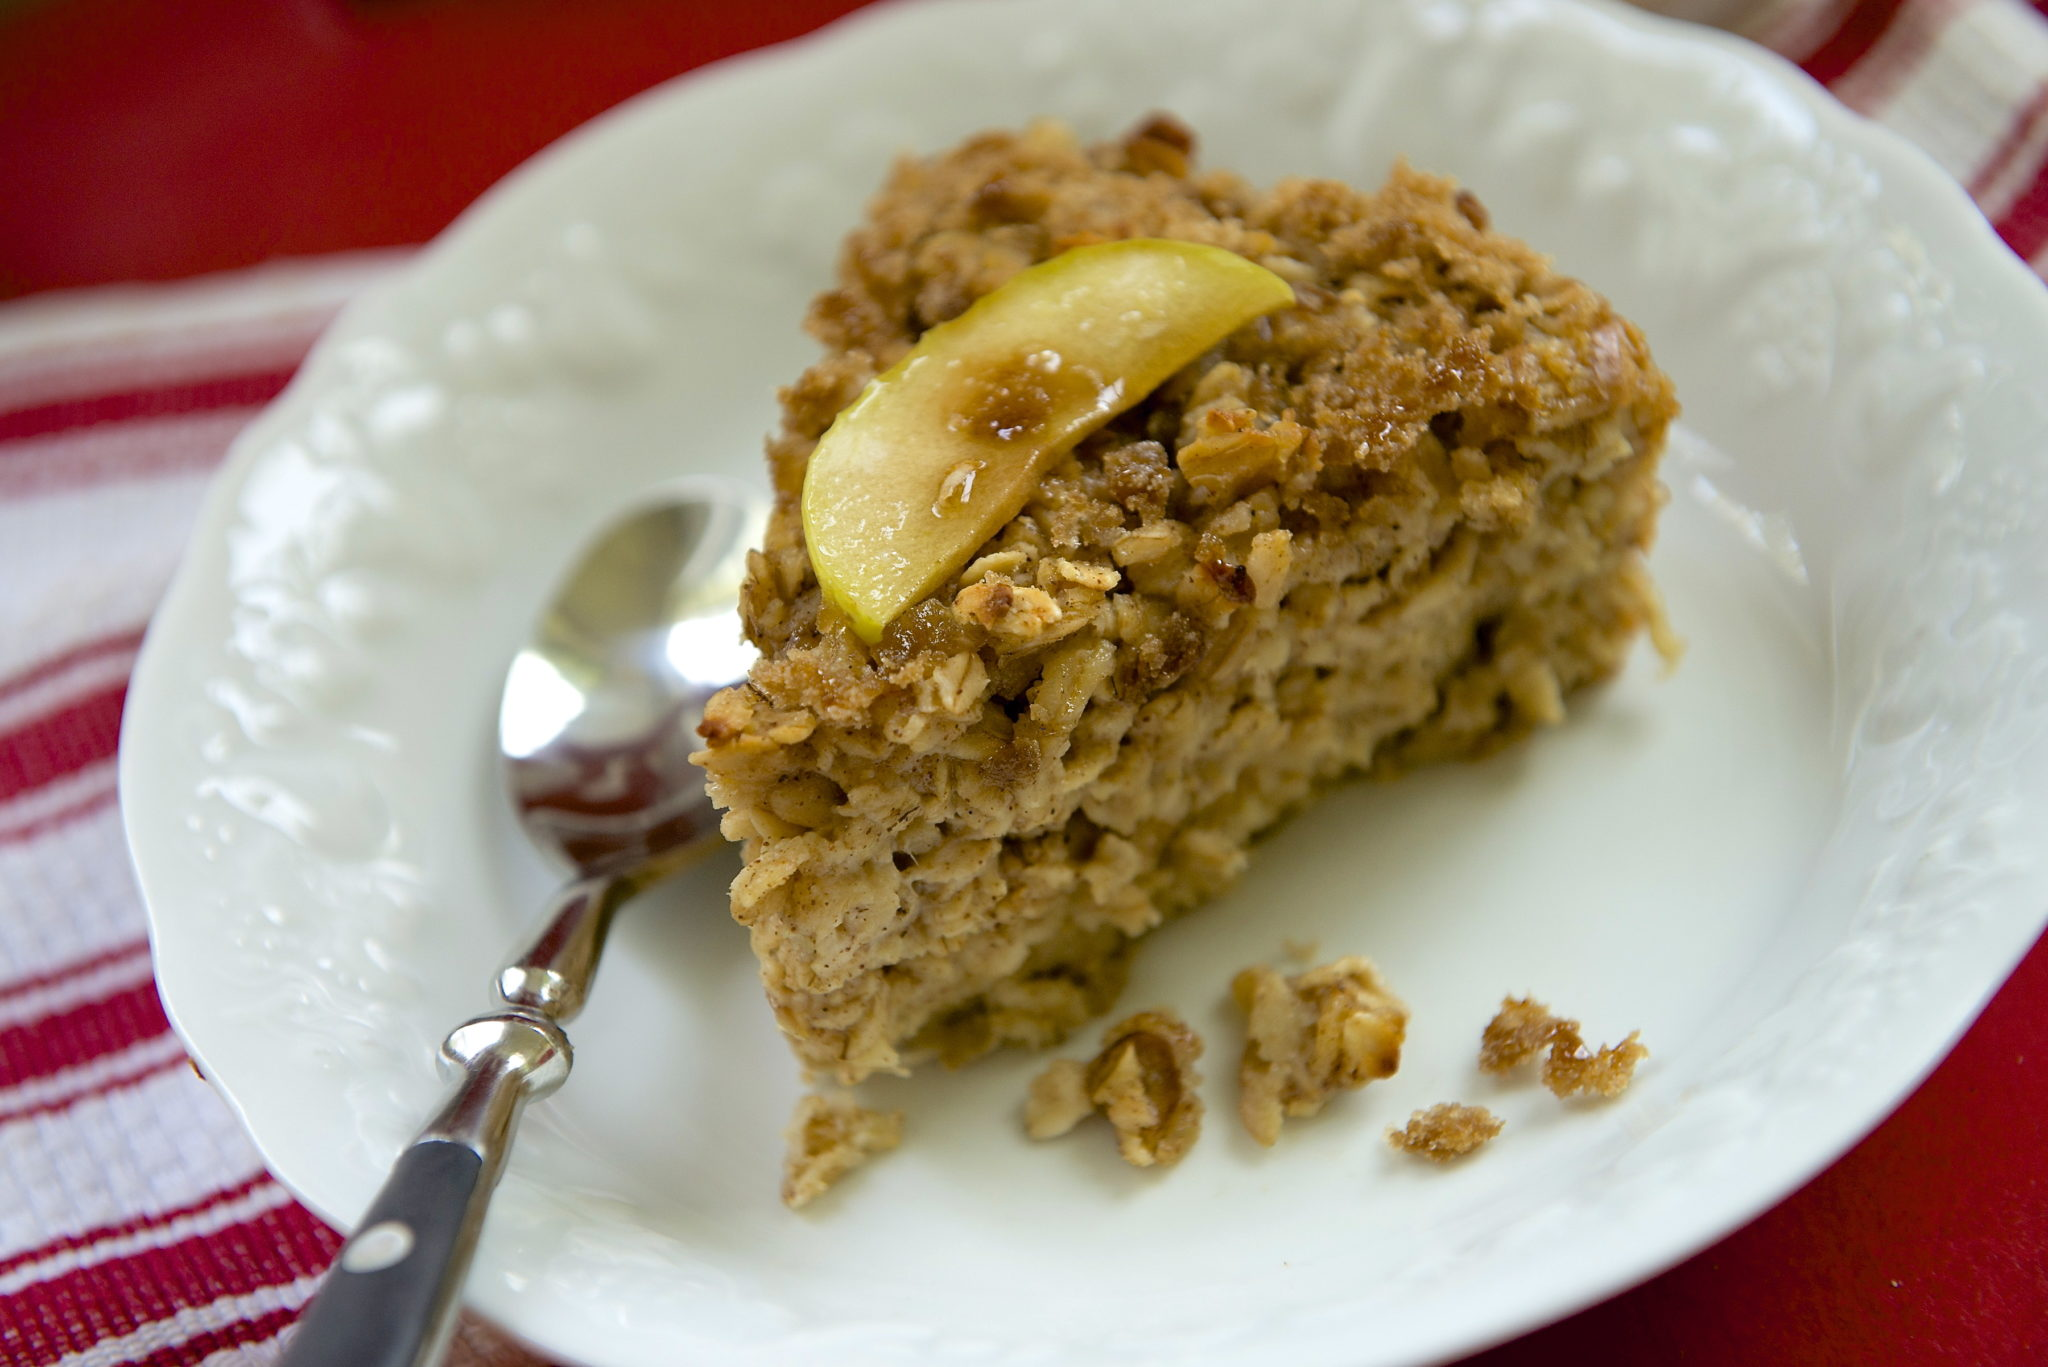 Overnight Crunchy Top Apple Cinnamon Baked Oatmeal